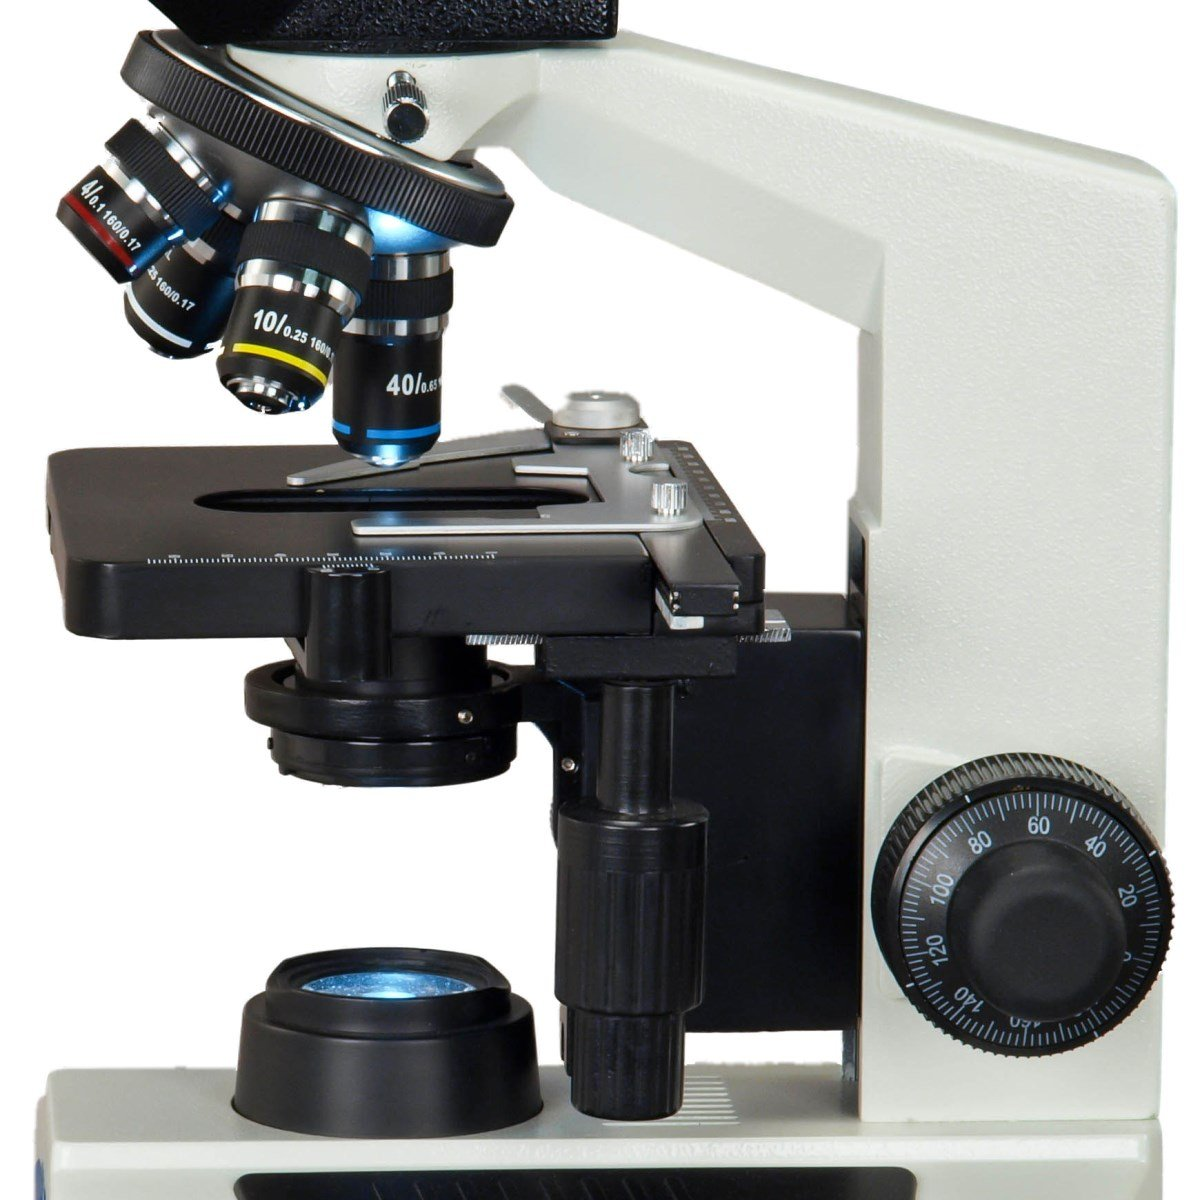 OMAX 40X-2500X Full Size Lab Digital Trinocular Compound LED Microscope with 14MP USB Camera and 3D Mechanical Stage by OMAX (Image #4)